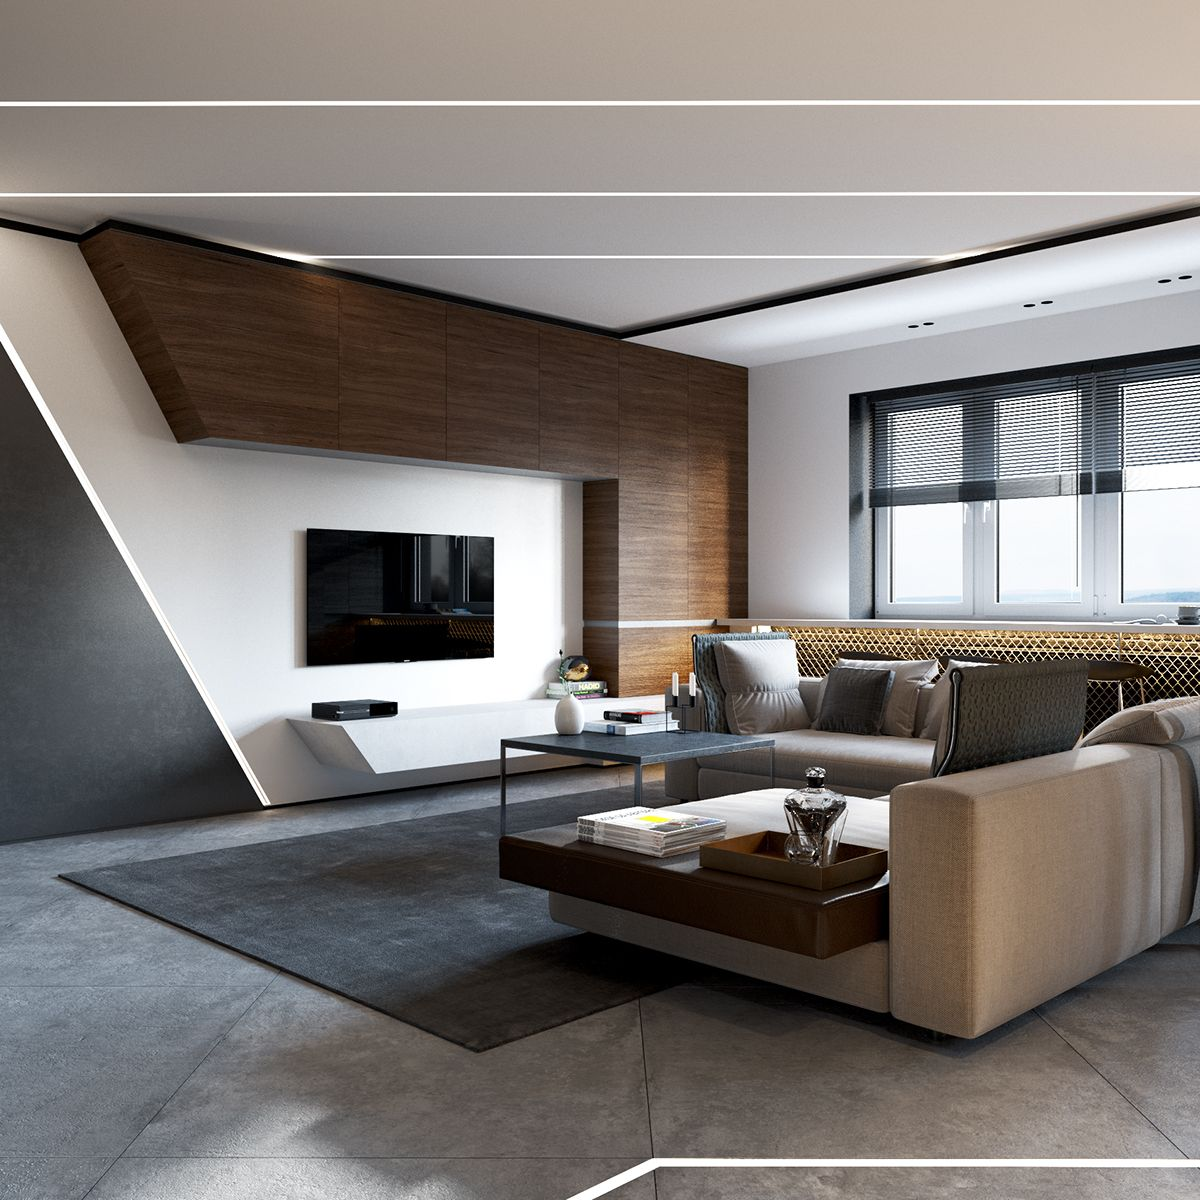 Sleek Contemporary Living Room Concrete And Wood Is A Nice Mix